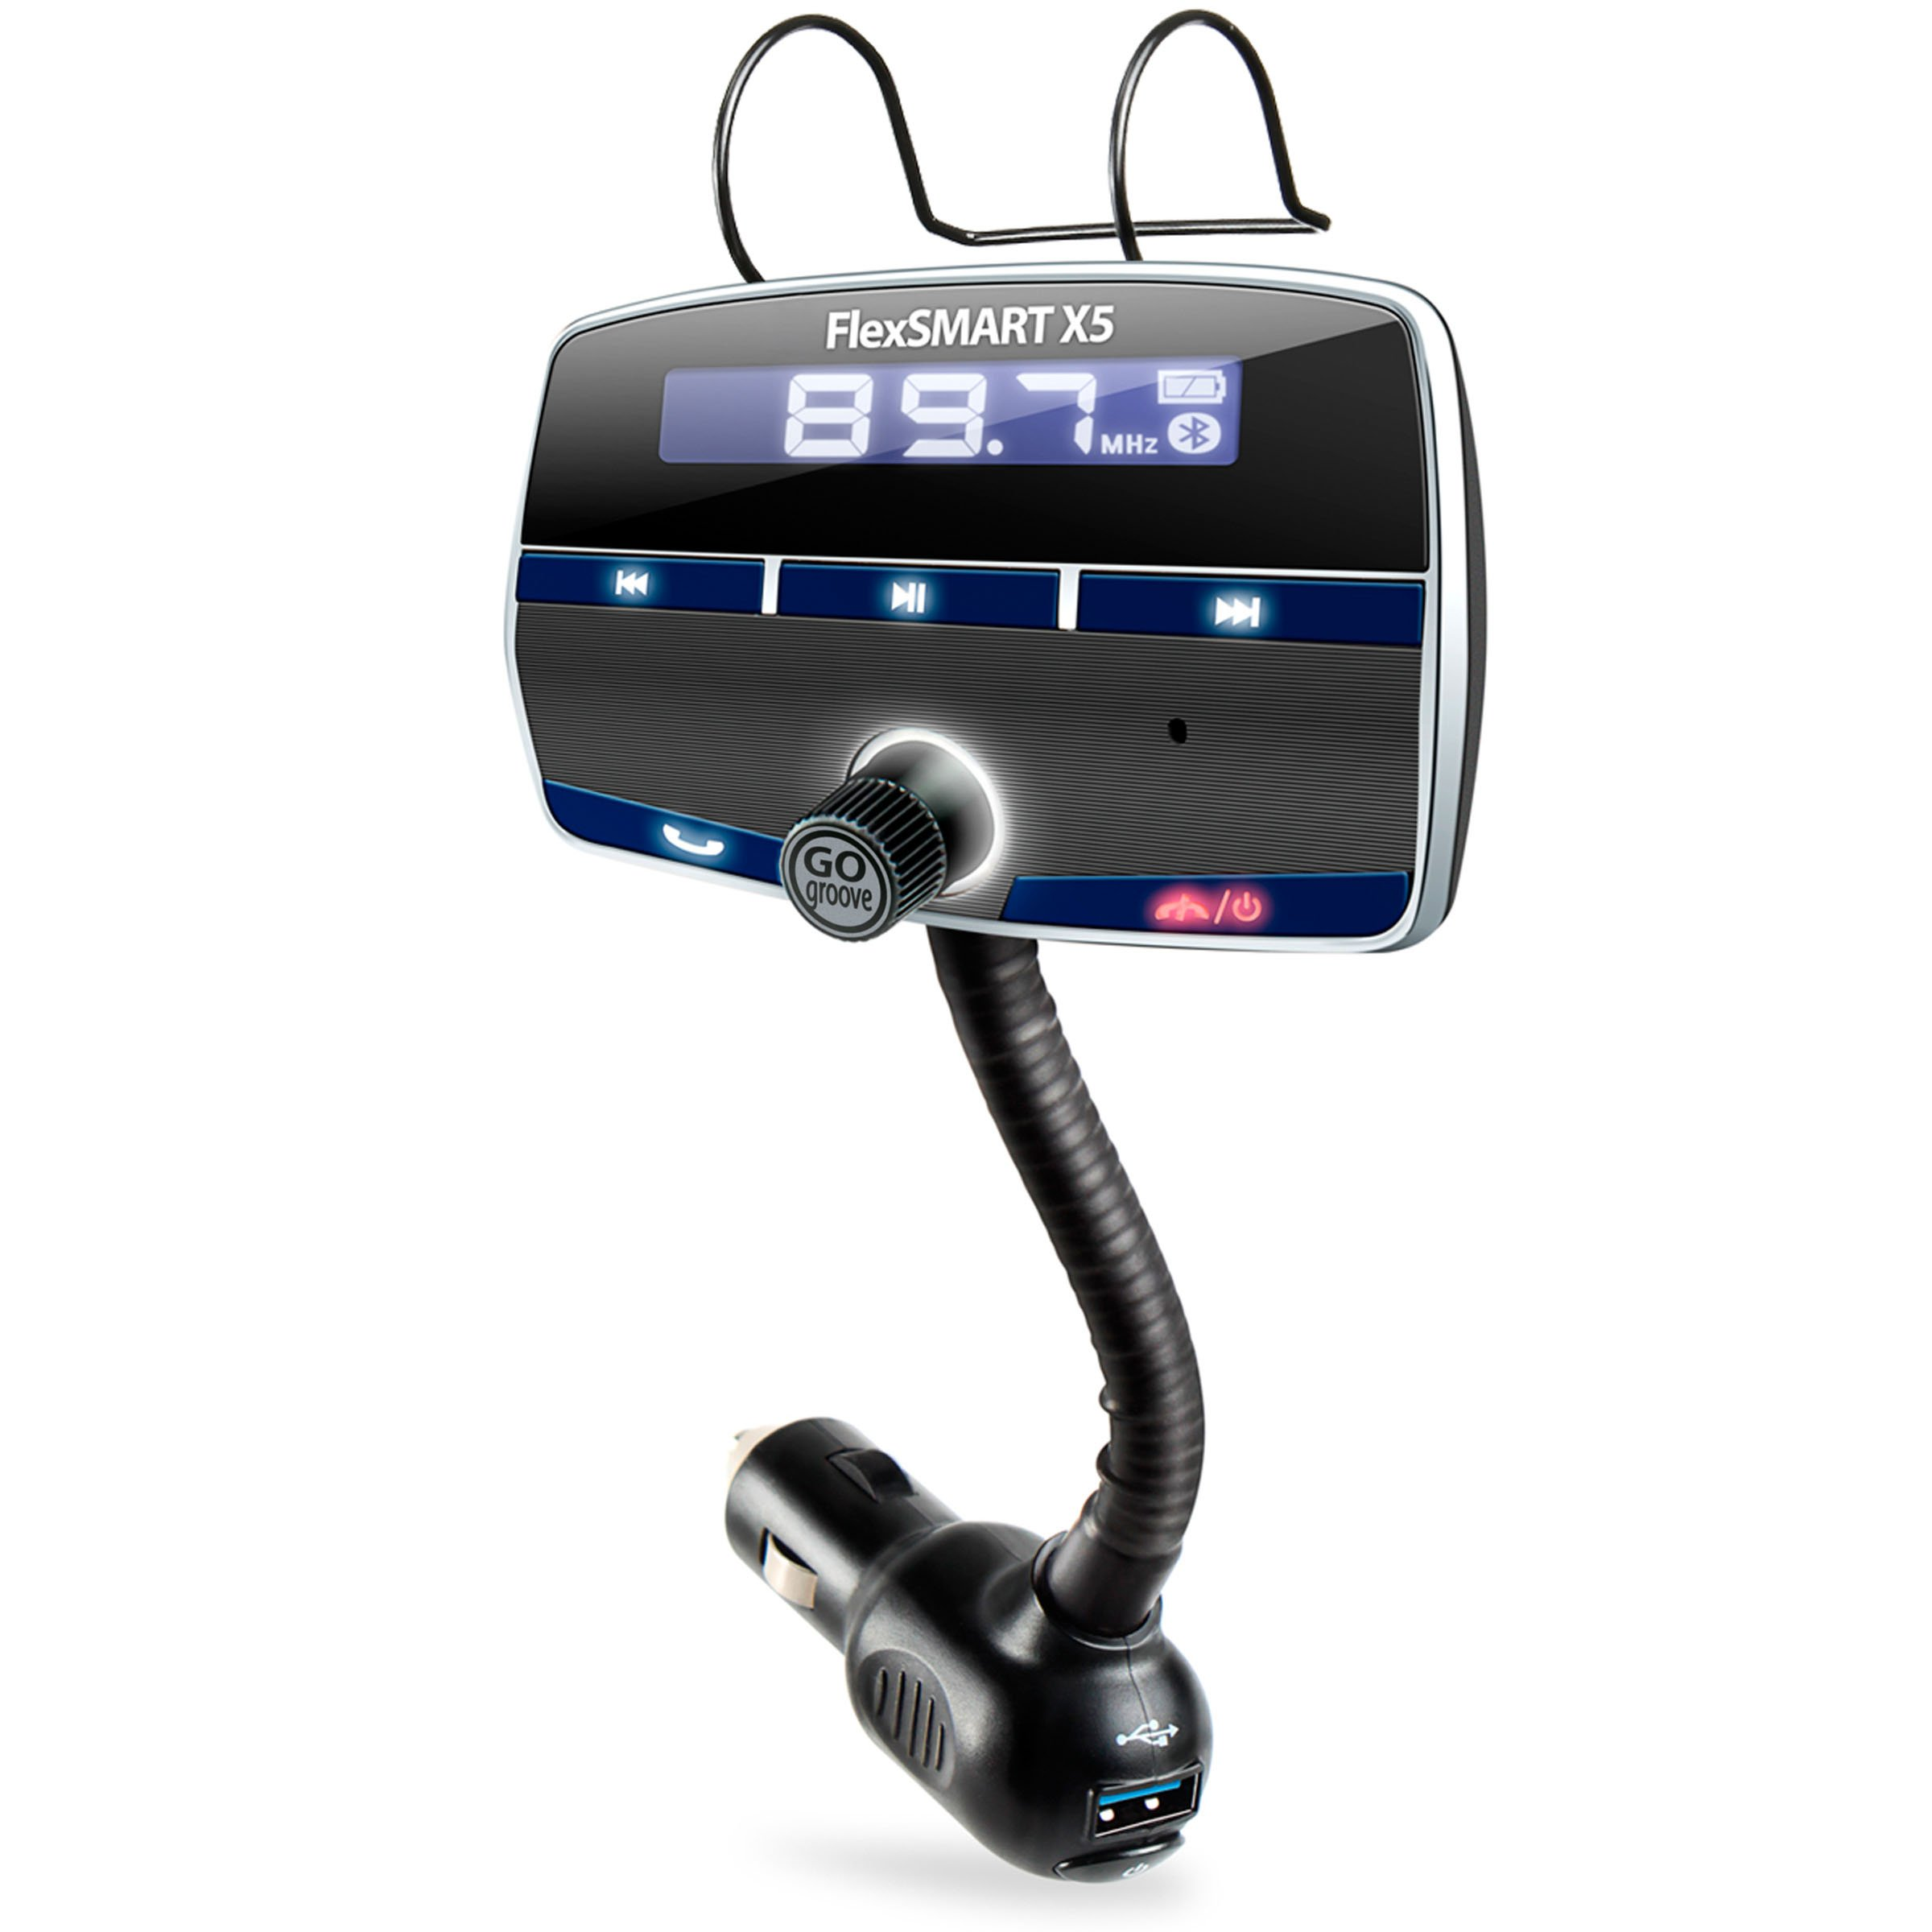 GOgroove FlexSMART X5 Bluetooth FM Transmitter Car Kit with Hands-Free Calling , Music Playback , USB Charging and Multiple Mounting Options - Works with Apple , Samsung , ASUS and More! by GOgroove